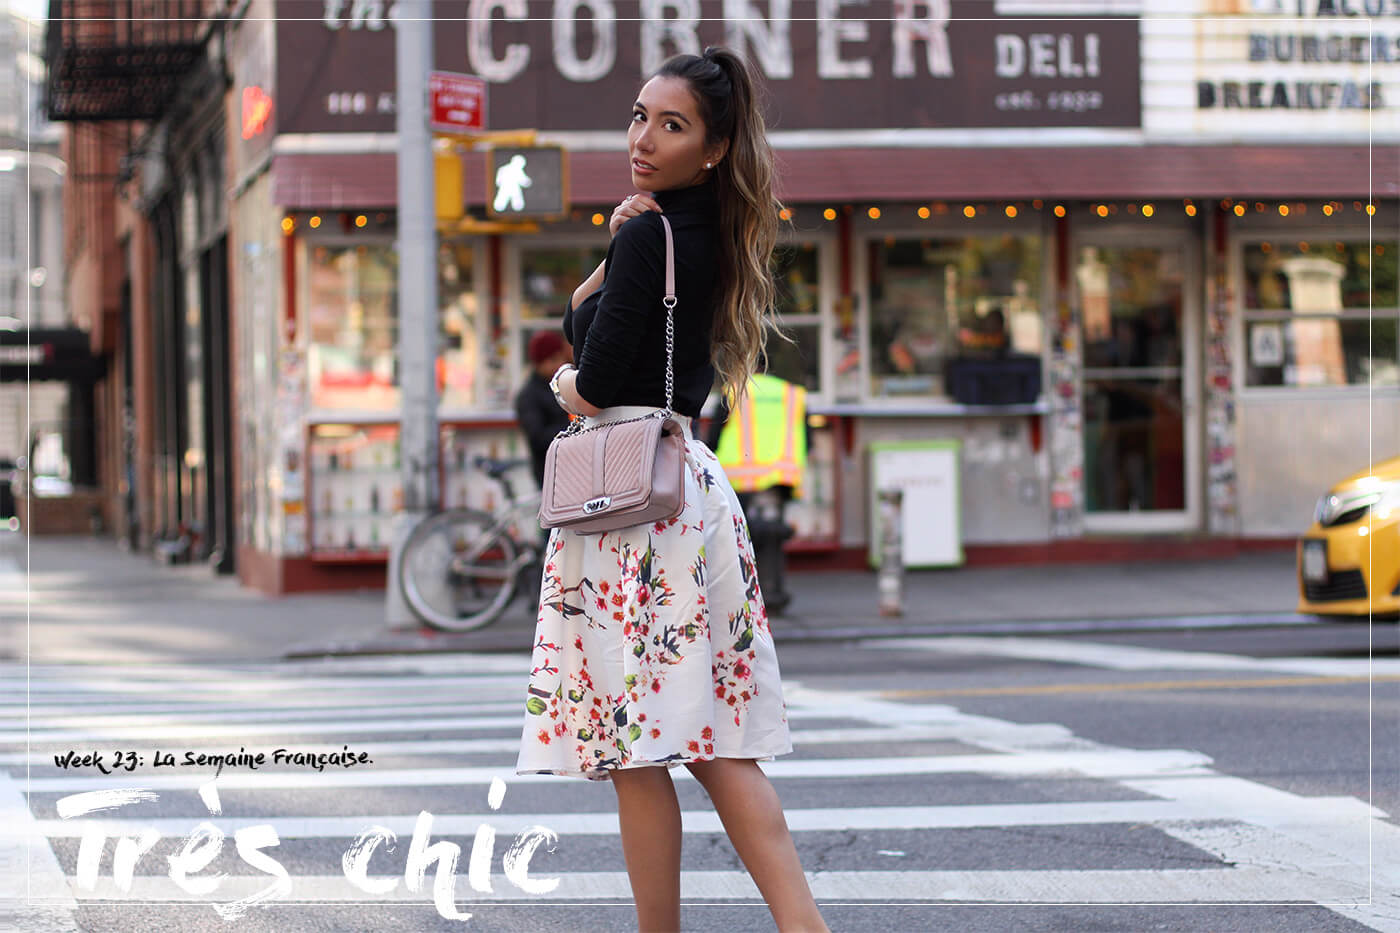 Make me chic floral skirt on blogger in NYC.